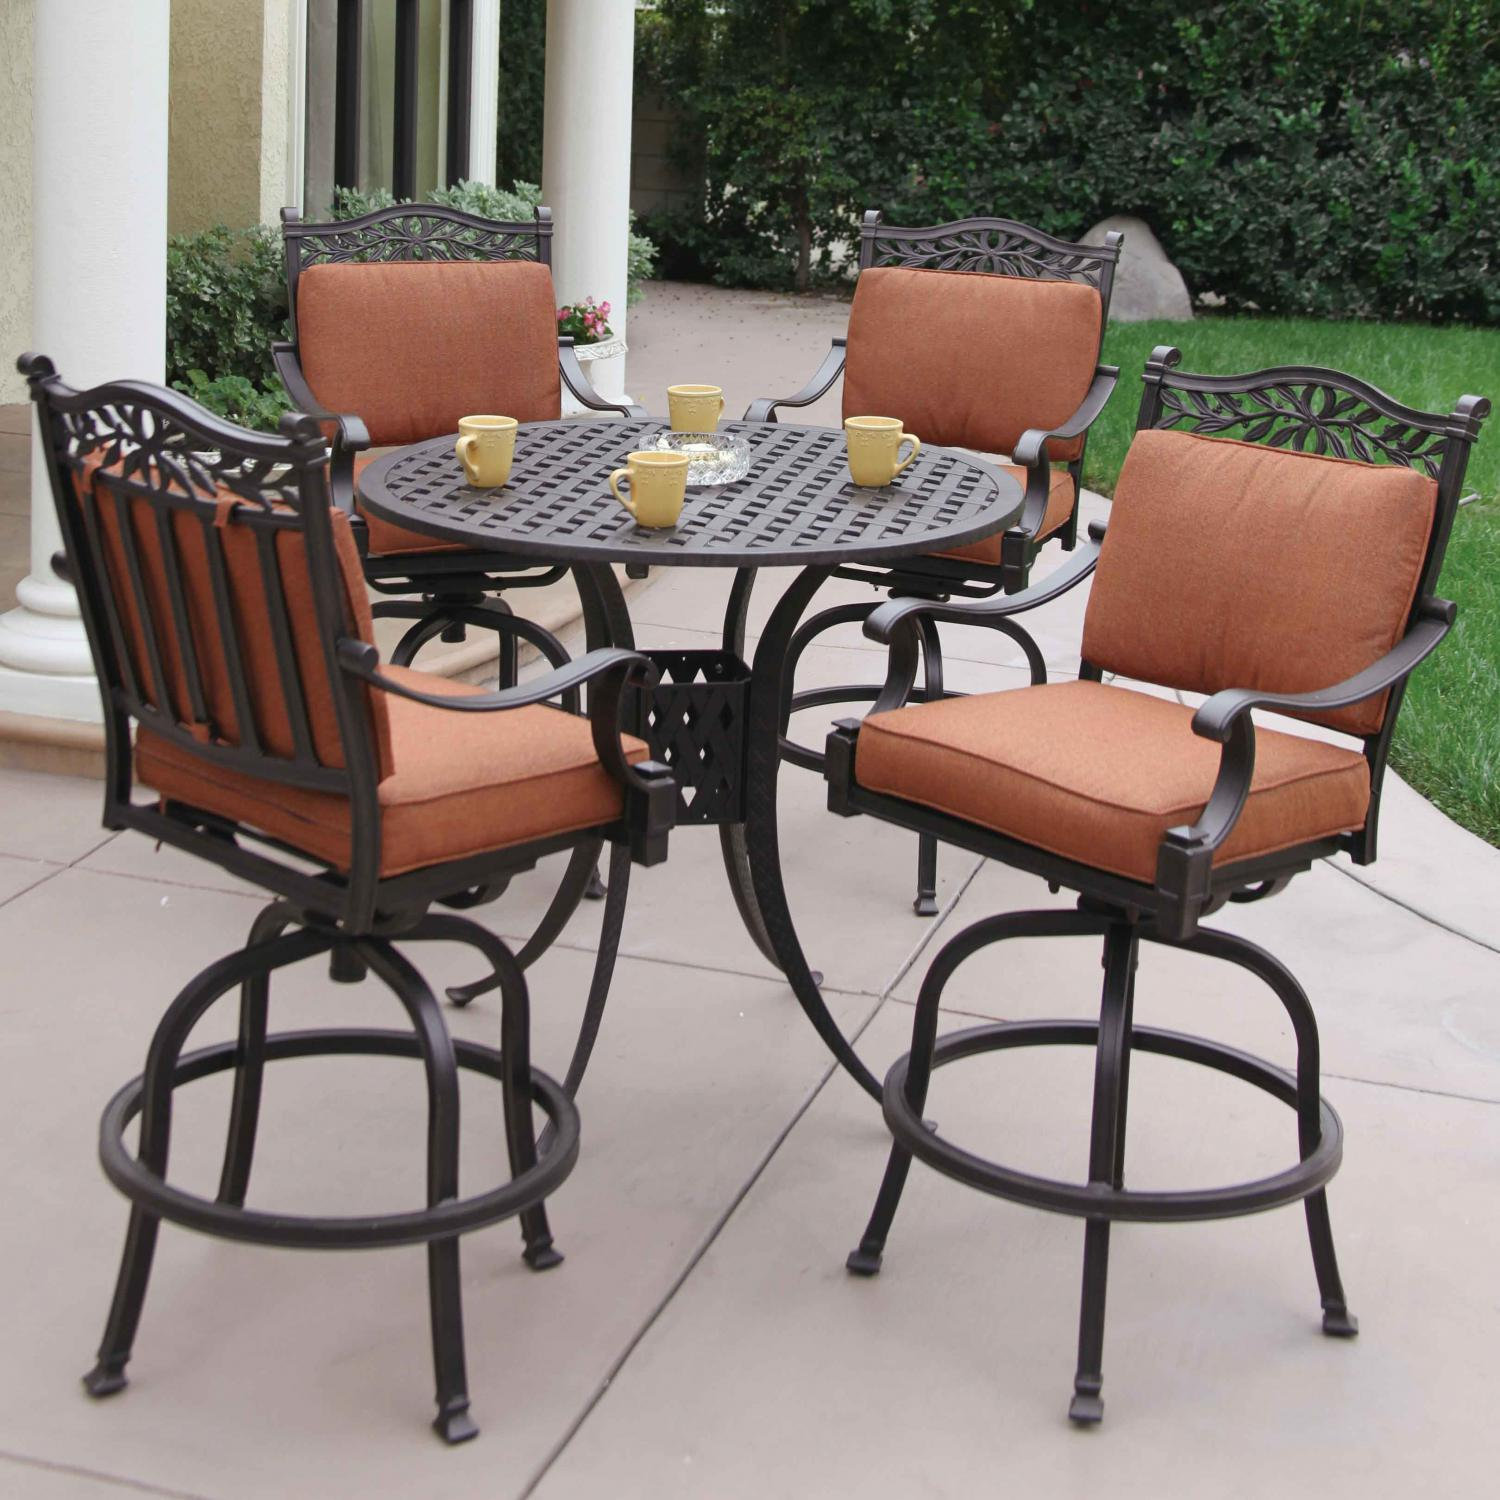 of furniture chairs inspirational awesome impressive stackable patio oracleboss attractive aluminum